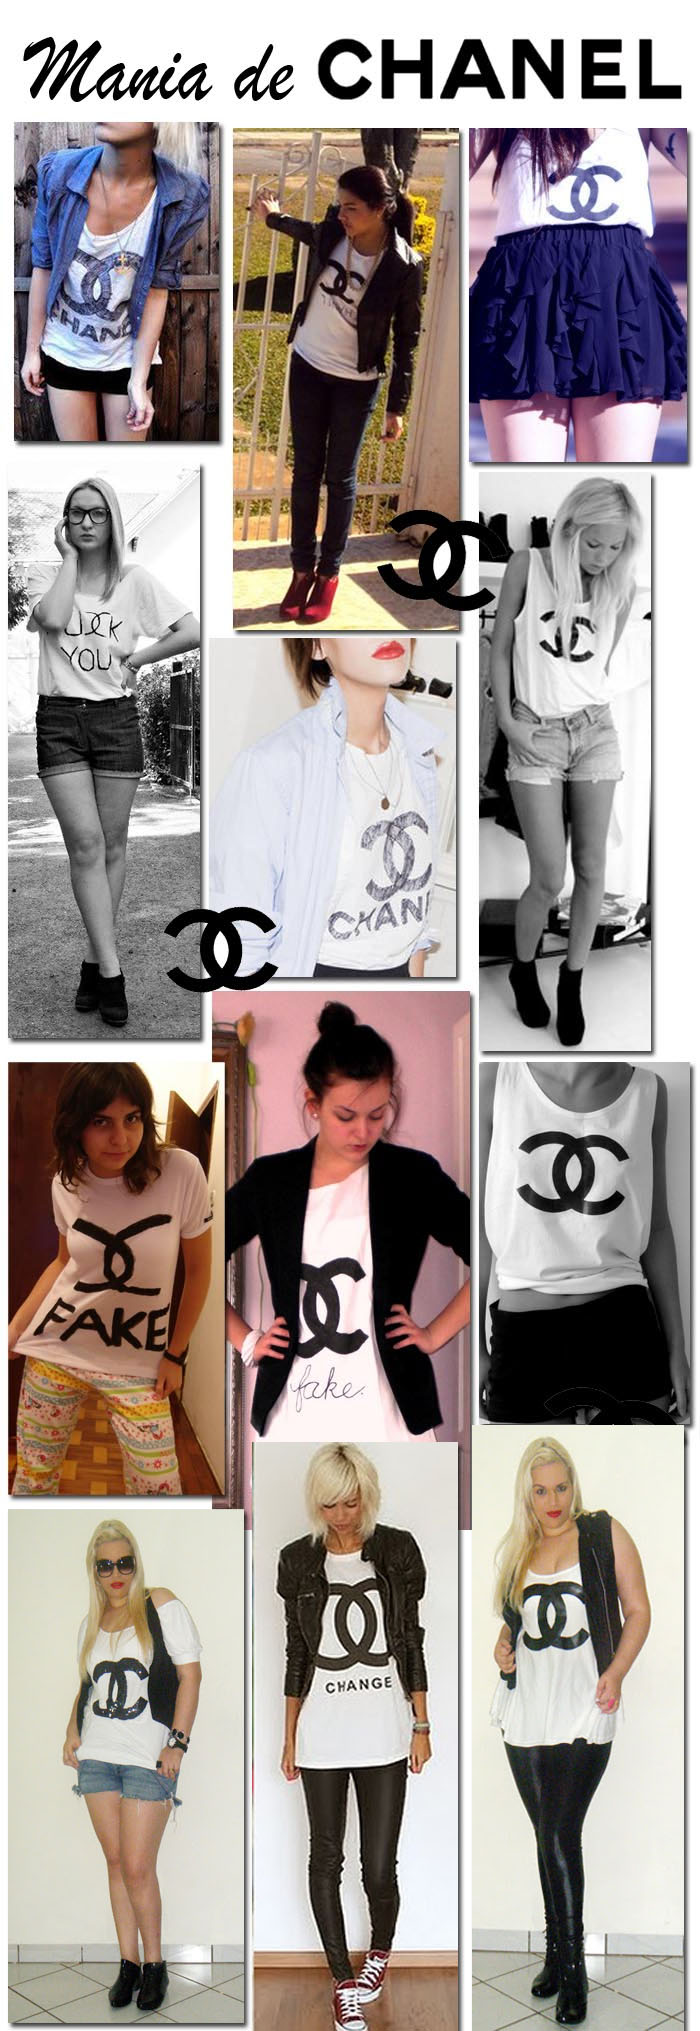 chanel fake